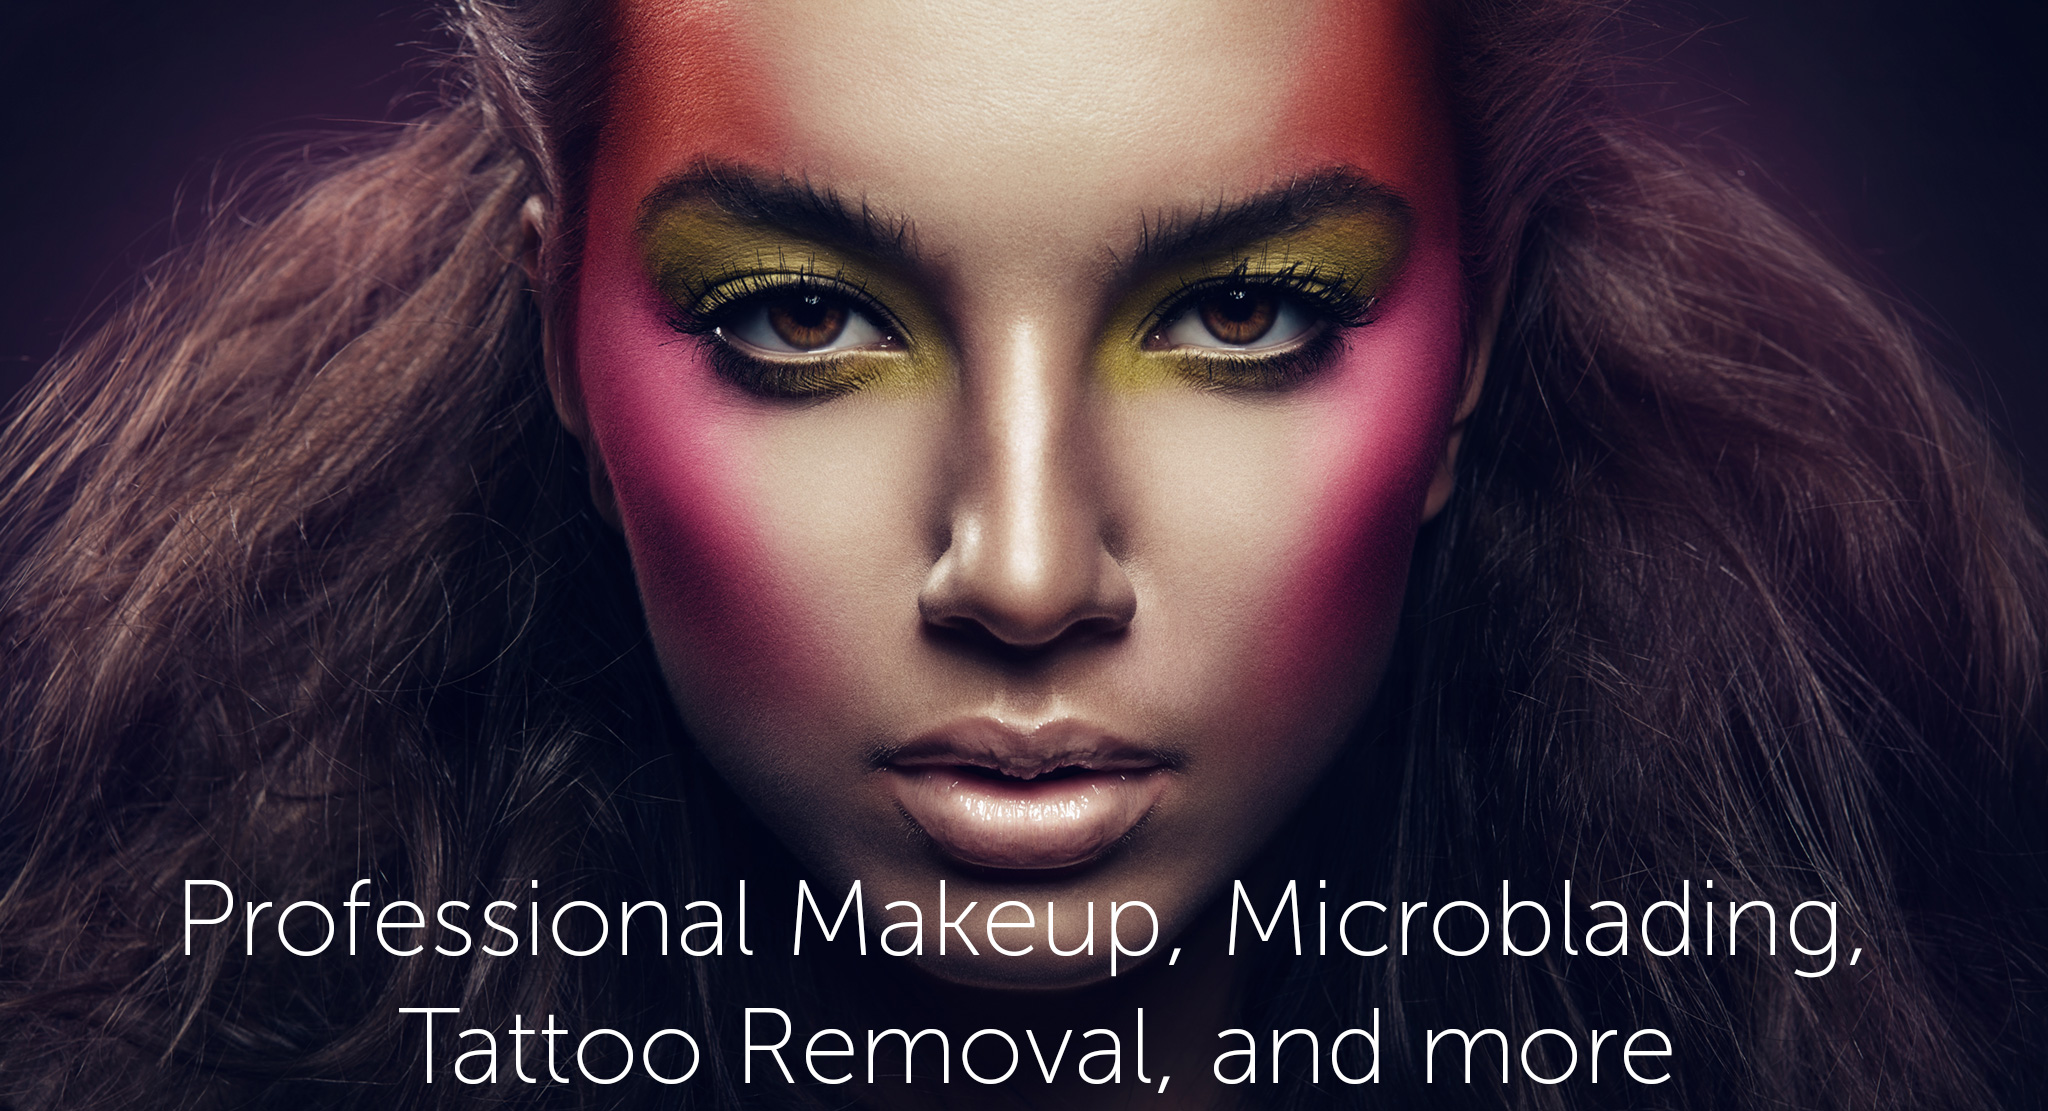 Professional makeup, Microblading, Tattoo Removal and more